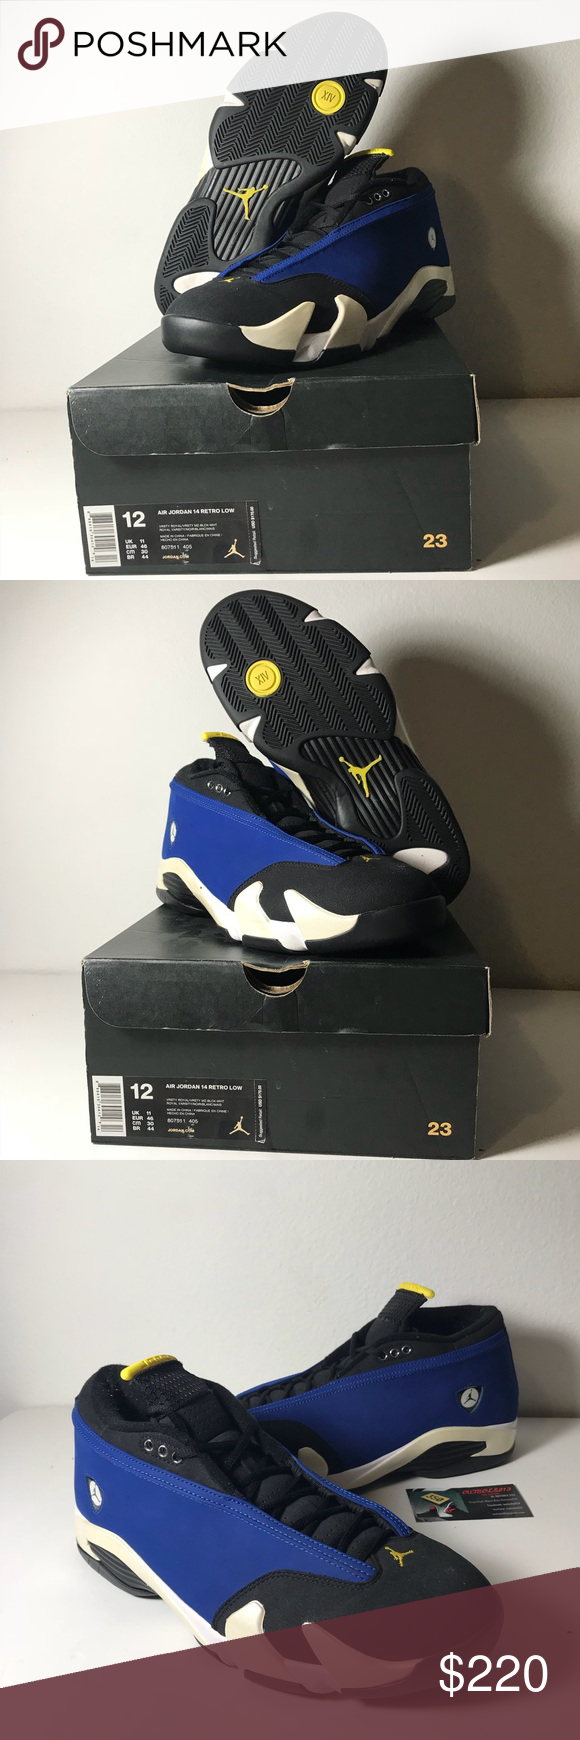 """best service cb8a7 42542 Jordan 14 """"Laney"""" Ferari on feet!! The inspiration behind the Jordan 14 is  the Ferari, clearly we can see both are amazing in design."""